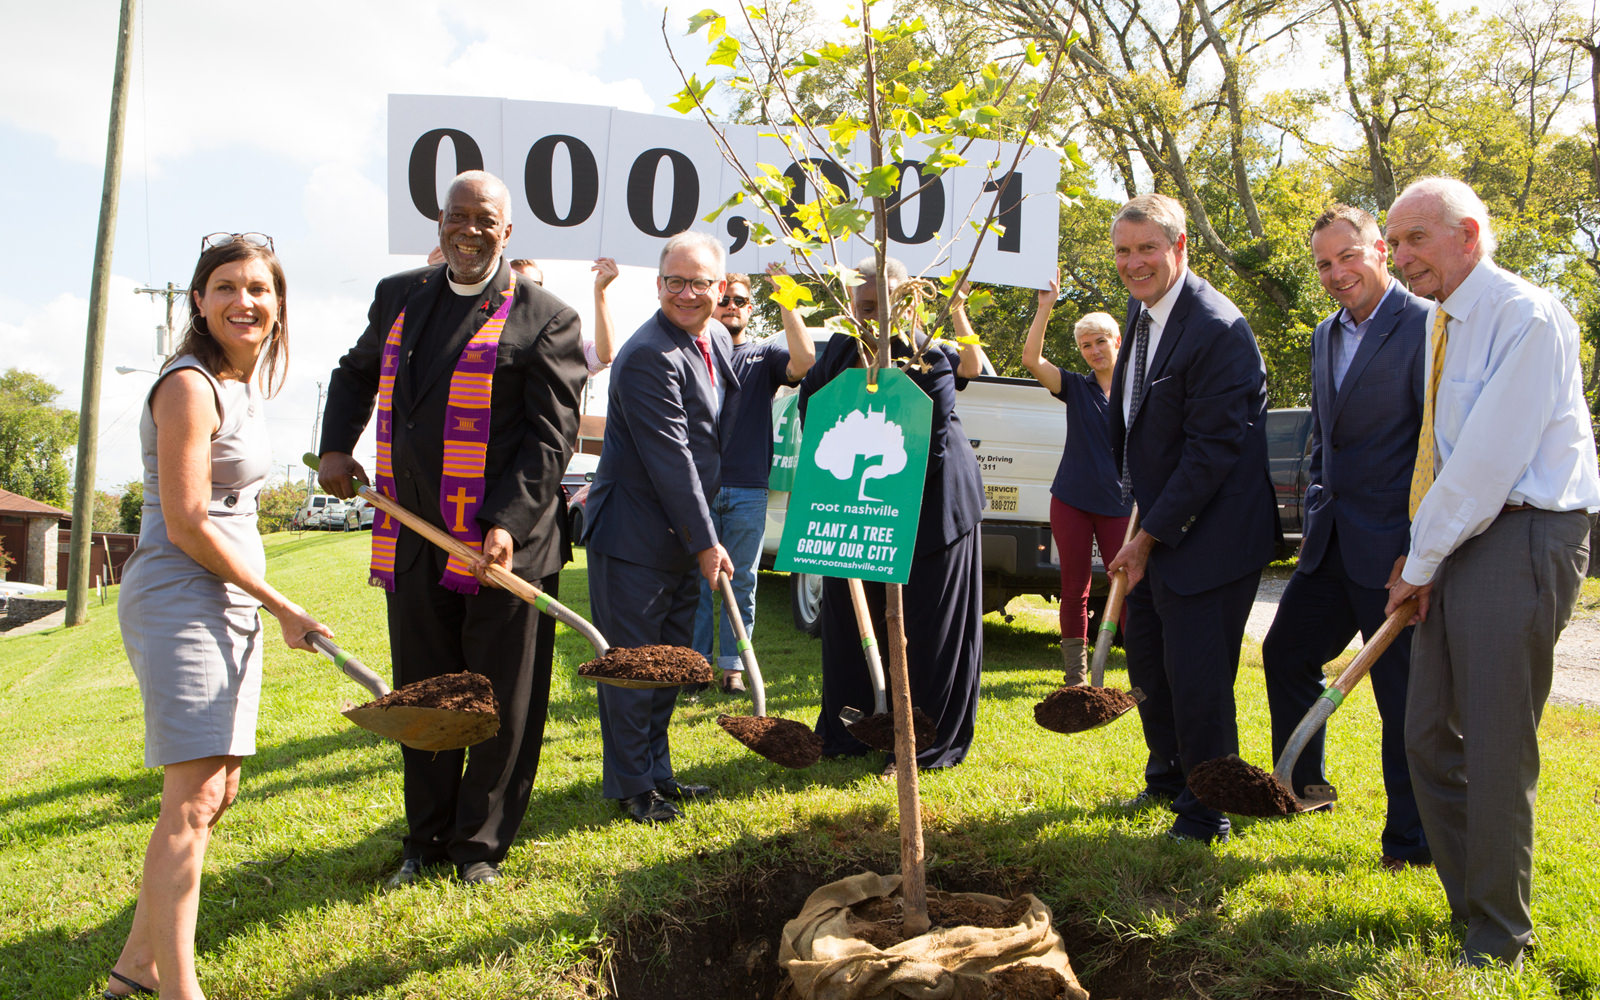 Mayor David Briley of Nashville, Tennessee, (third from left) joins other community leaders in planting the first tree to launch Root Nashville.